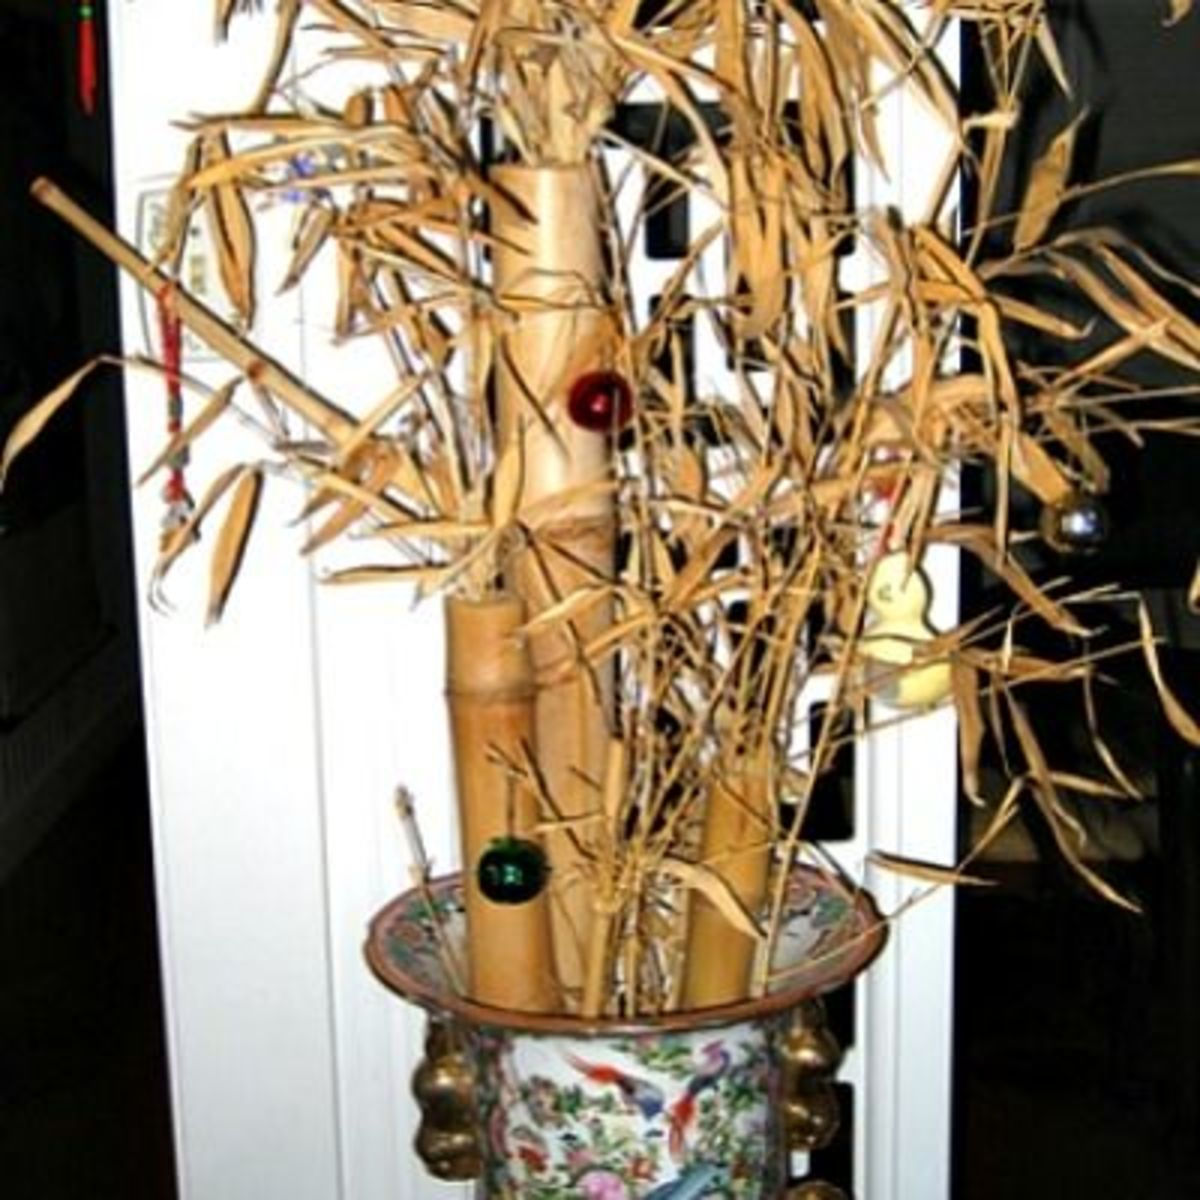 Decorate the bamboo plant in front of the Chinese restaurant entrance.